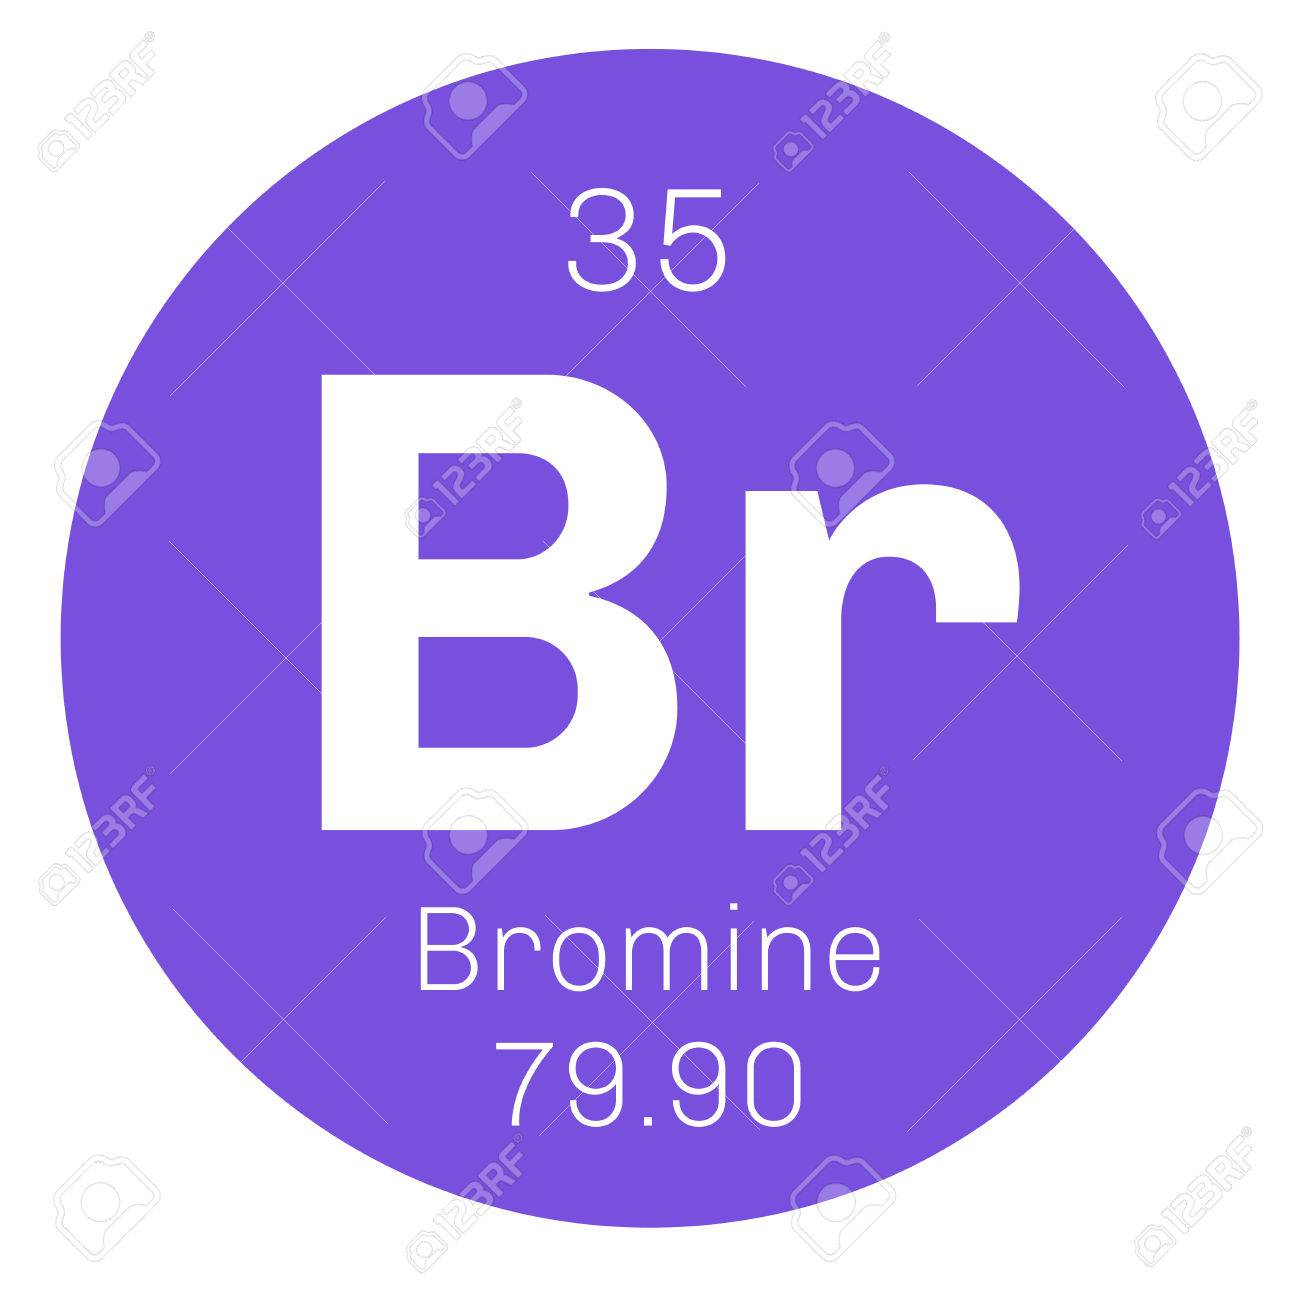 bromine chemical element corrosive and toxic colored icon with atomic number and atomic weight